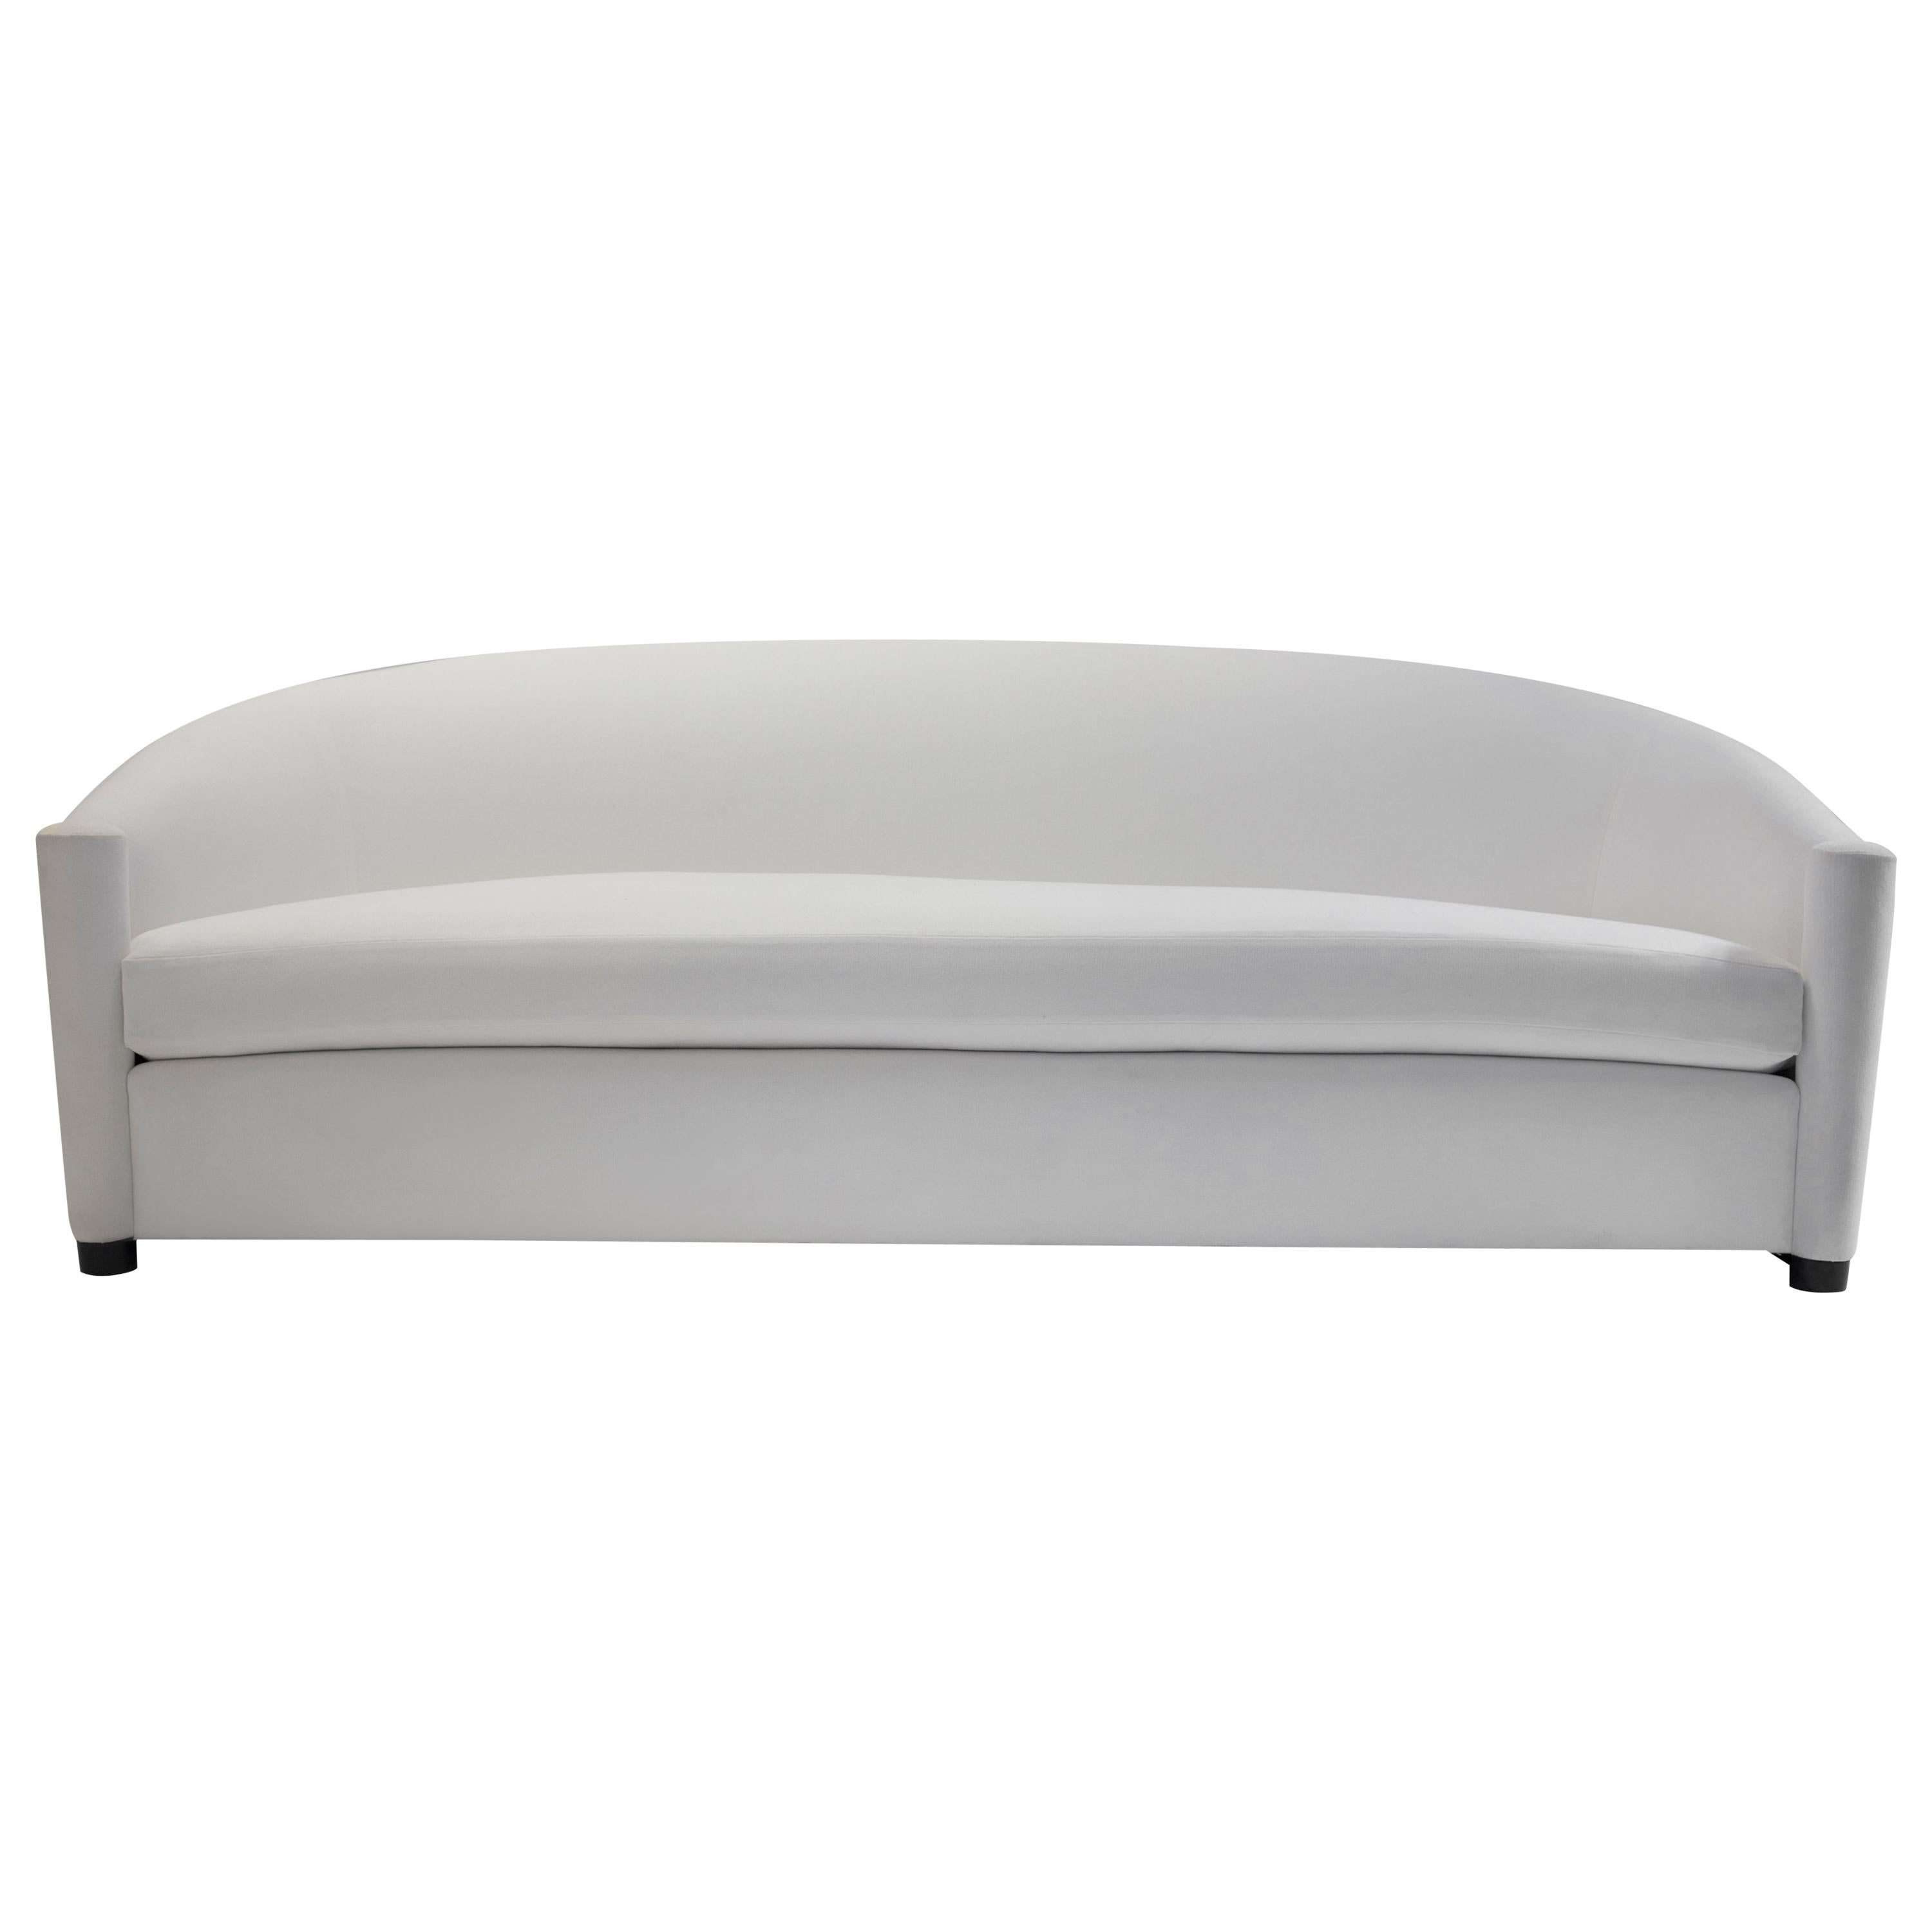 Curved Sofa with Scroll Arms and Loose Seat Cushion with Wrap around Wood Legs